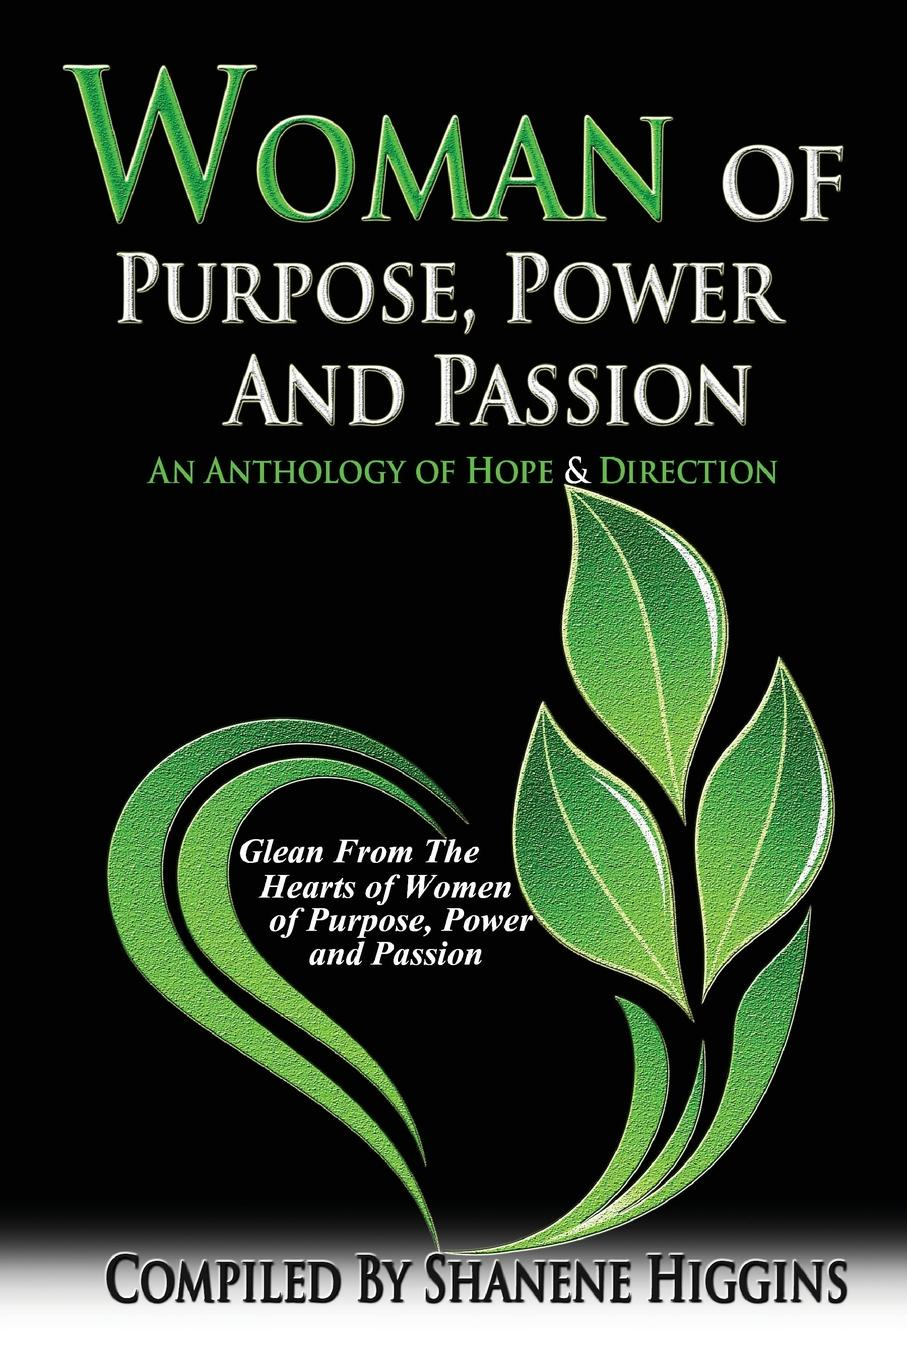 Shanene L. Higgins Woman of Purpose, Power and Passion. An Anthology of Hope & Direction leadership institute women with purpose finding life balance direction